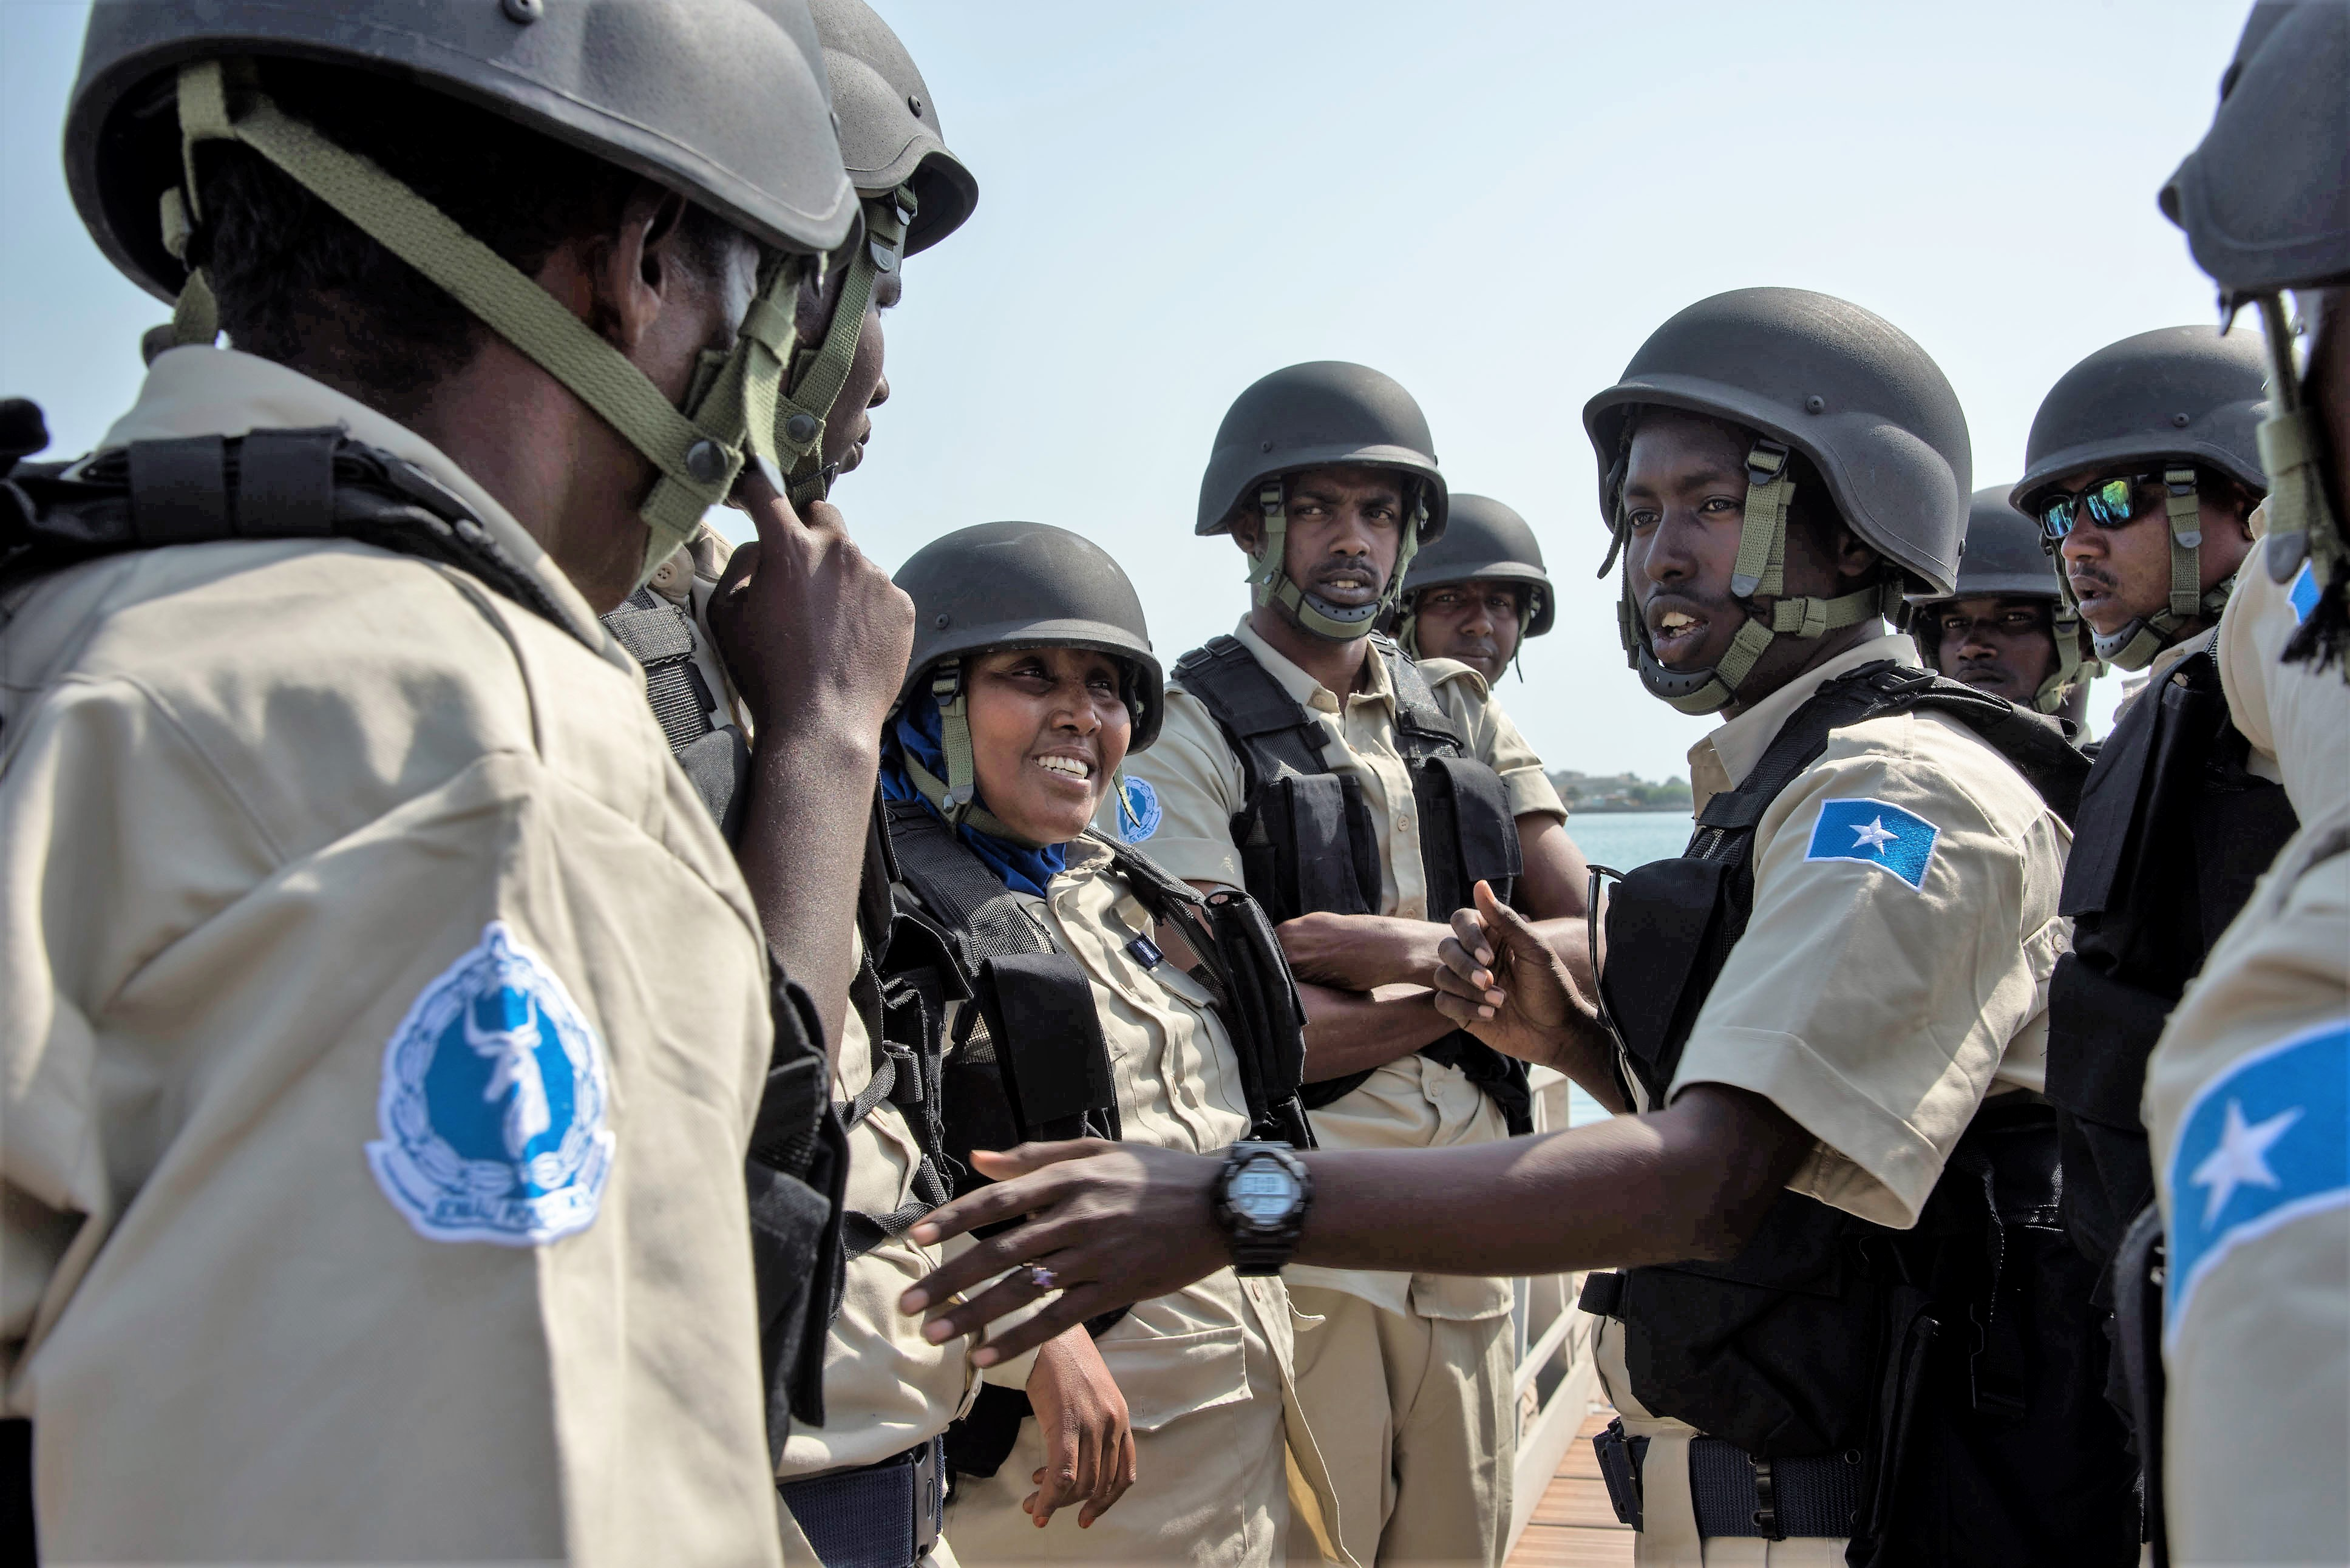 Somali maritime police talk together before running through a visit, board, search and seizure drill (VBSS) during exercise Cutlass Express 2018 in the Port of Djibouti Feb. 5, 2018. Cutlass Express is designed to improve cooperation, maritime domain awareness and information sharing practices to increase capabilities between the U.S., East African and Western Indian Ocean nations. (U.S. Air National Guard photo by SSgt Allyson Manners)